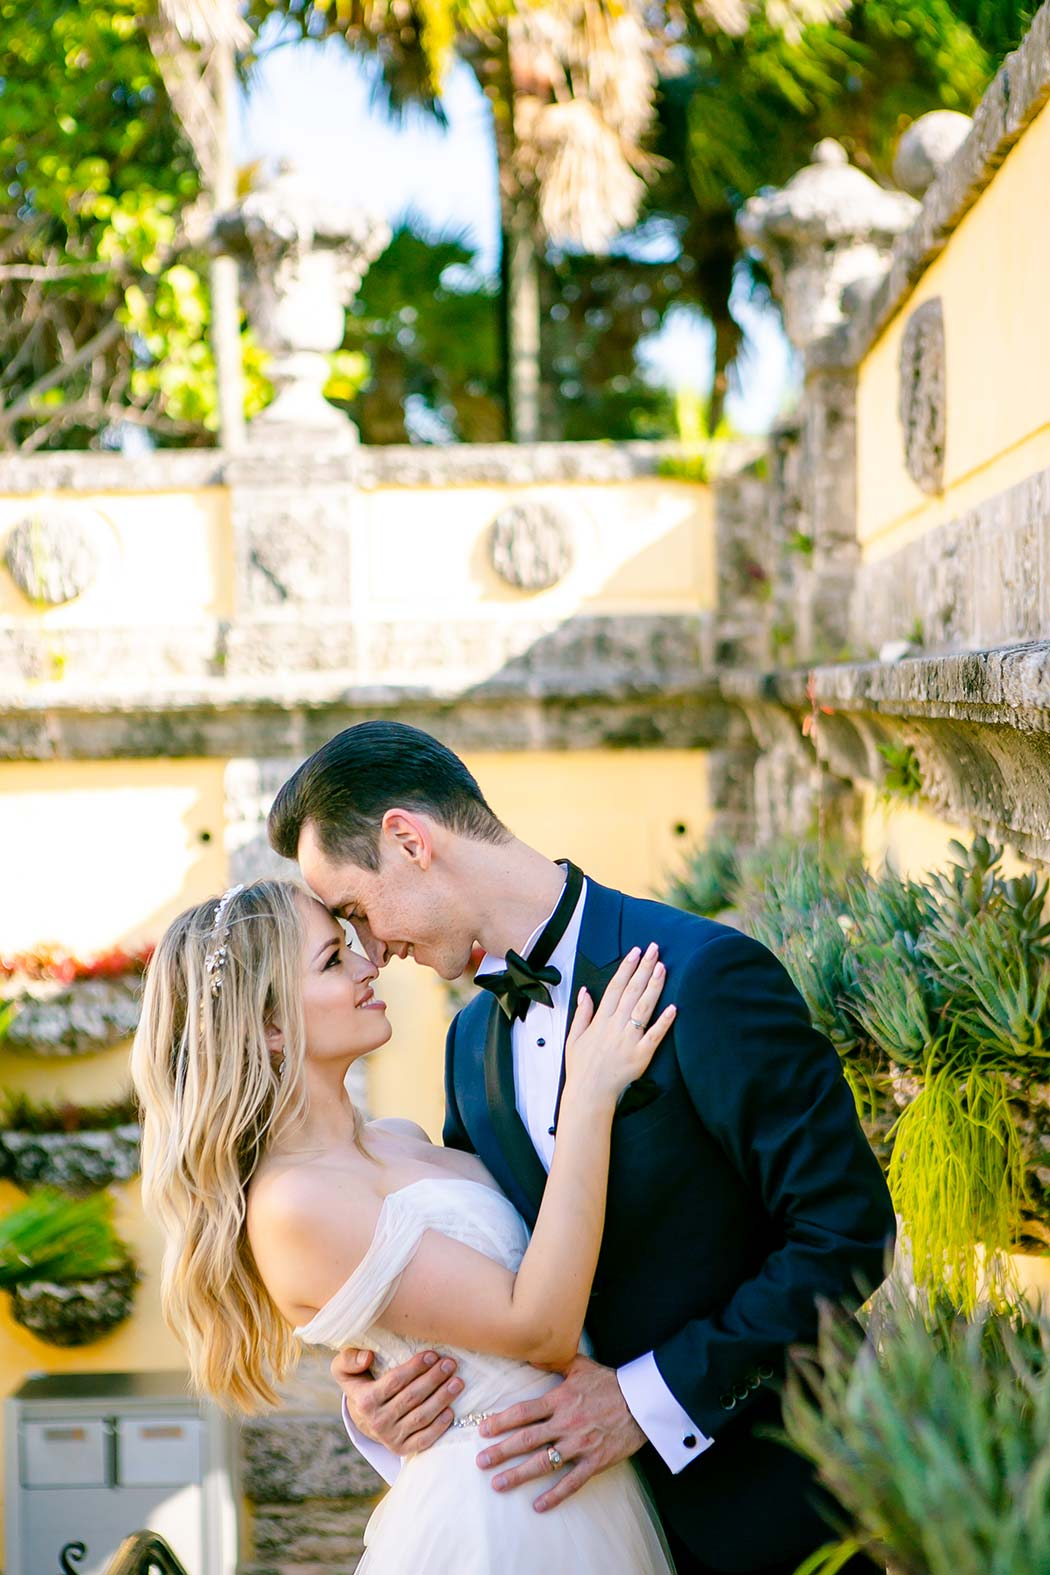 vizcaya museum couples photography session | vizcaya engagement photographer | engagement photography at vizcaya